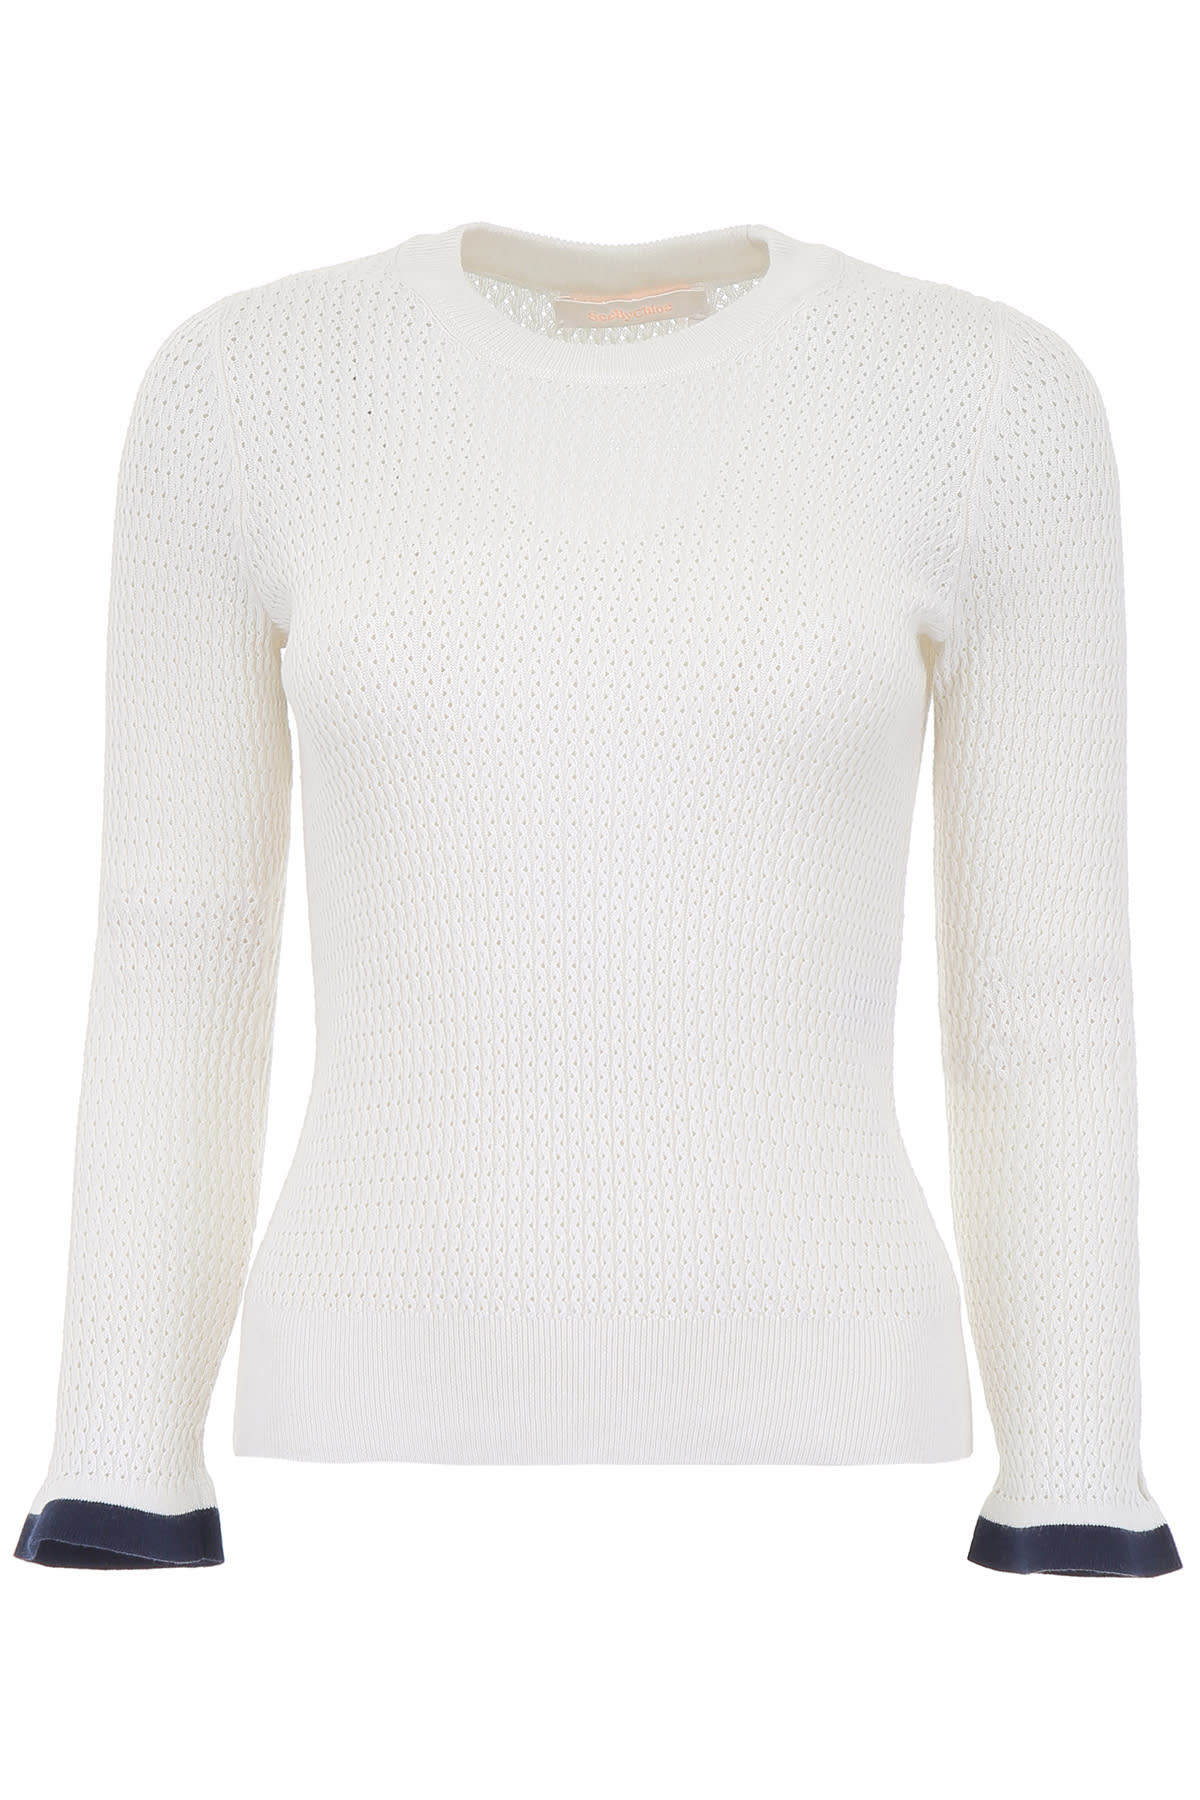 See by Chloé Perforated Knit Top